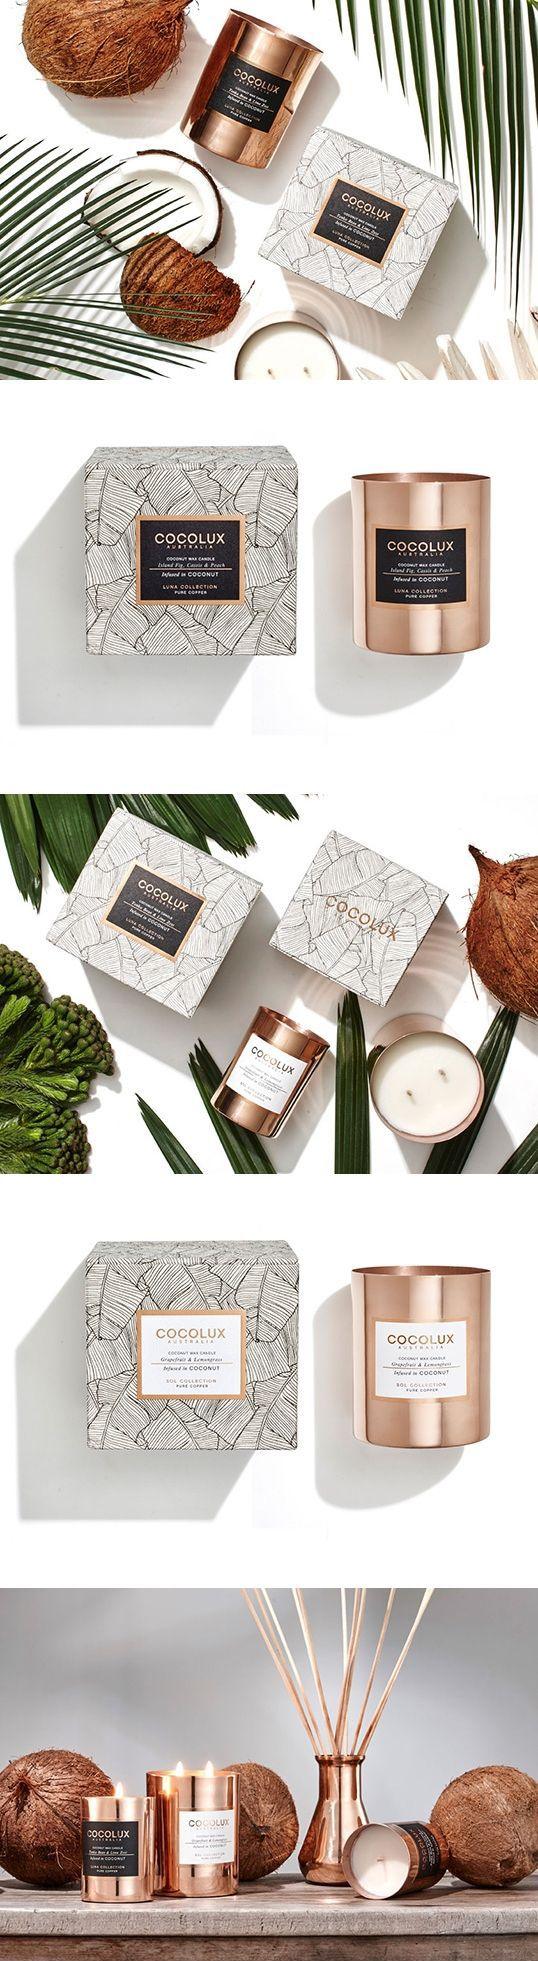 COCOLUX AUSTRALIA | LUXURY NATURAL CANDLES